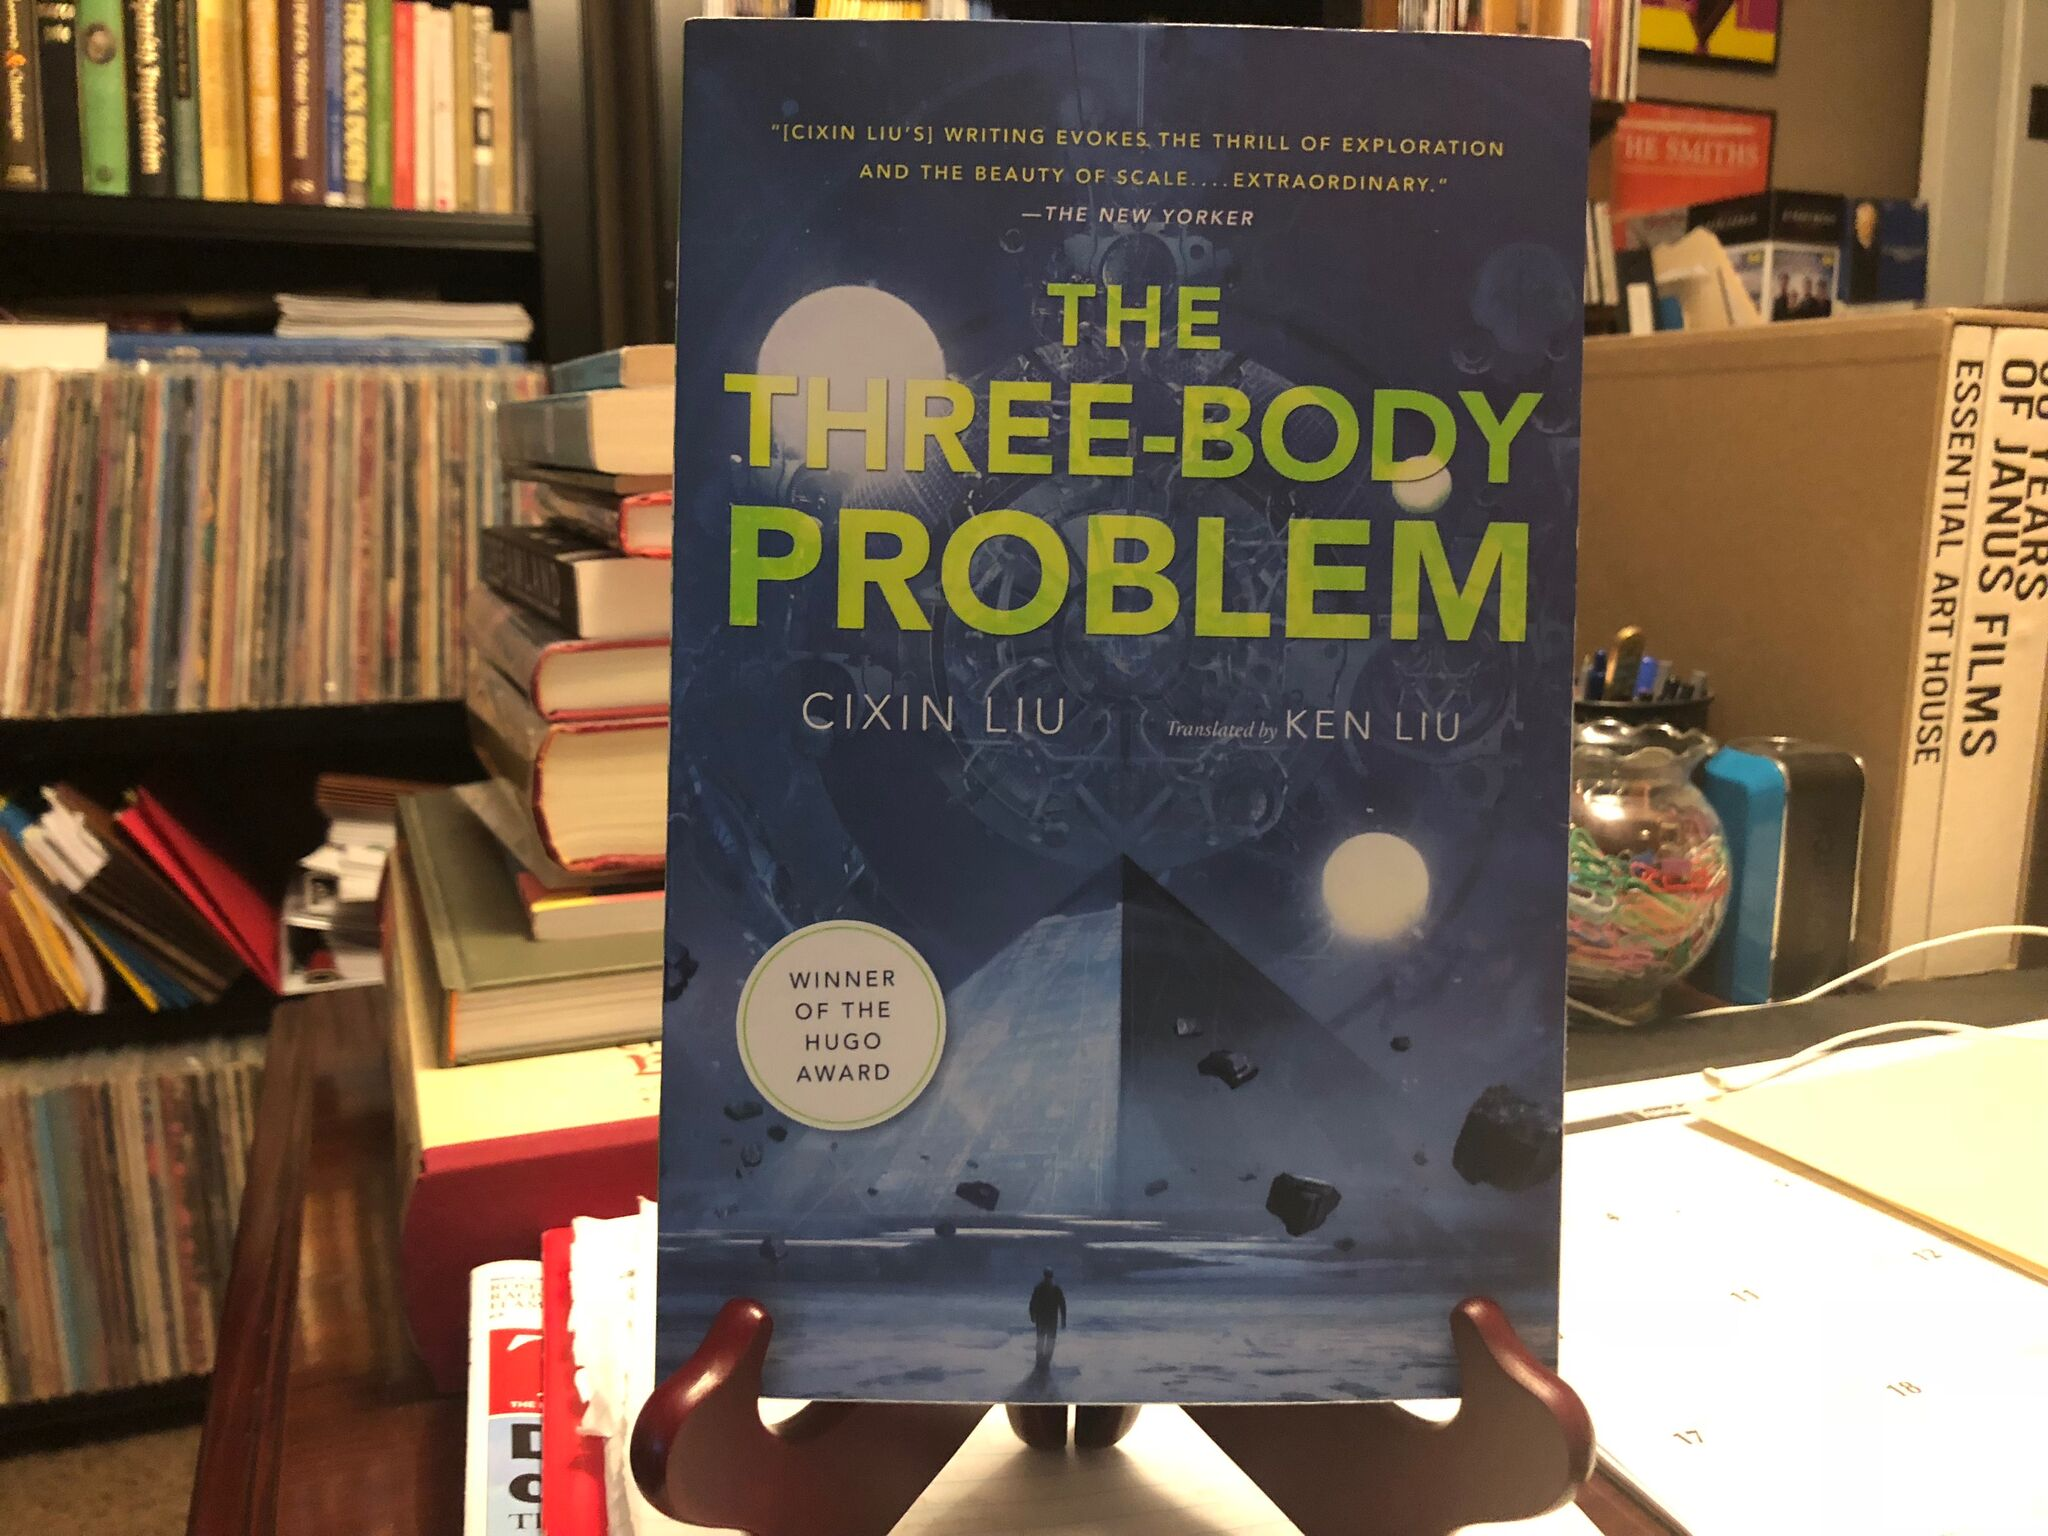 The Three-Body Problem, by Cixin Liu